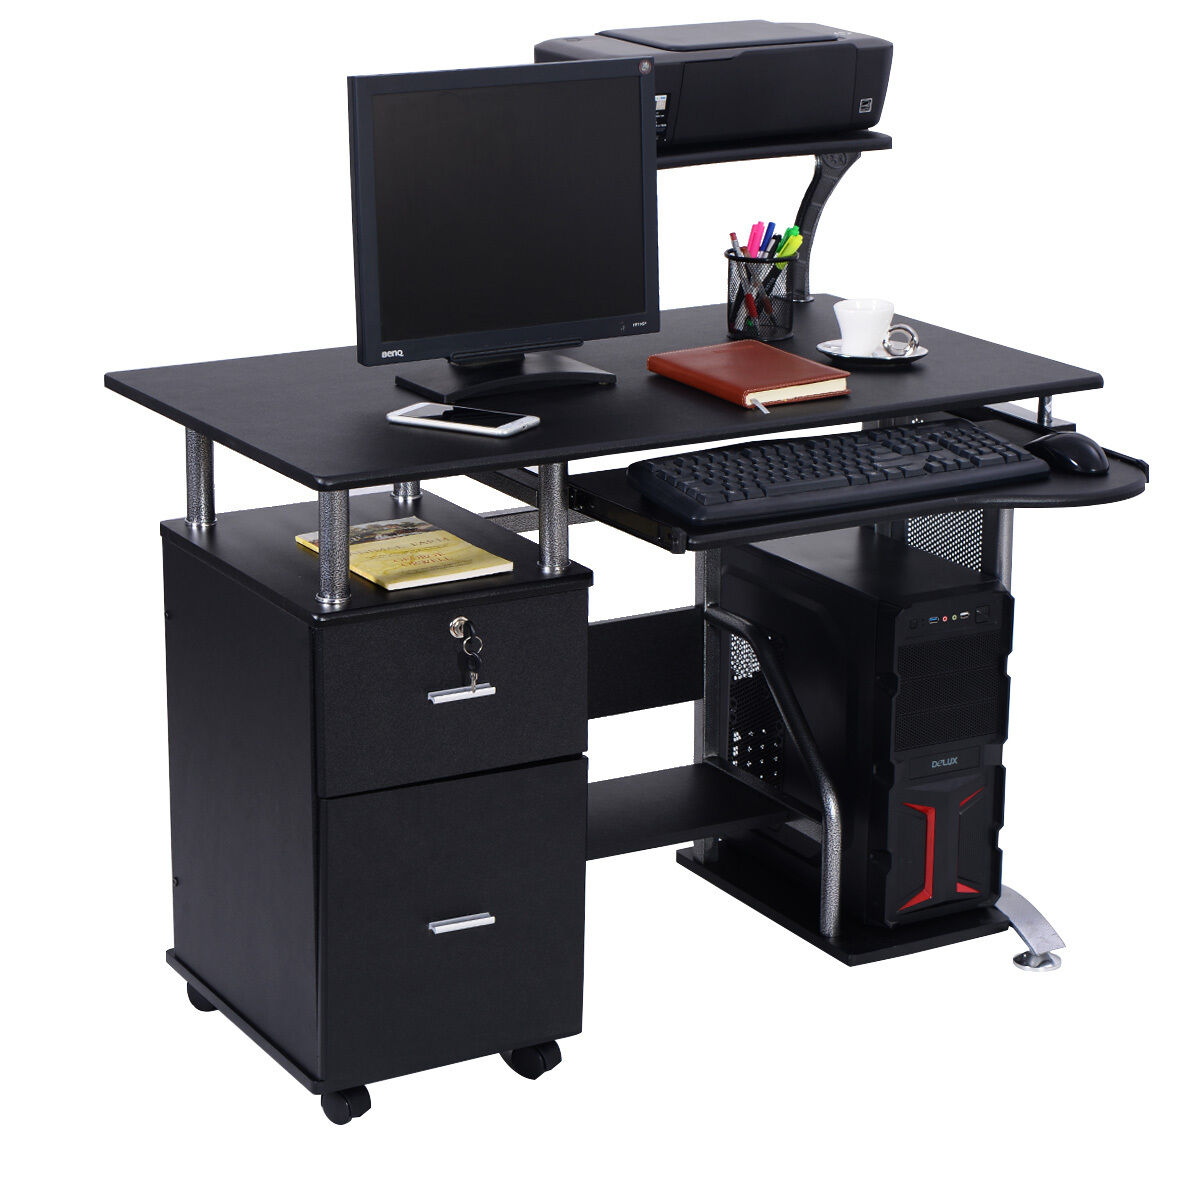 small tables for office. Computer Desk PC Laptop Table WorkStation Home Office Furniture W/ Printer Shelf Small Tables For O